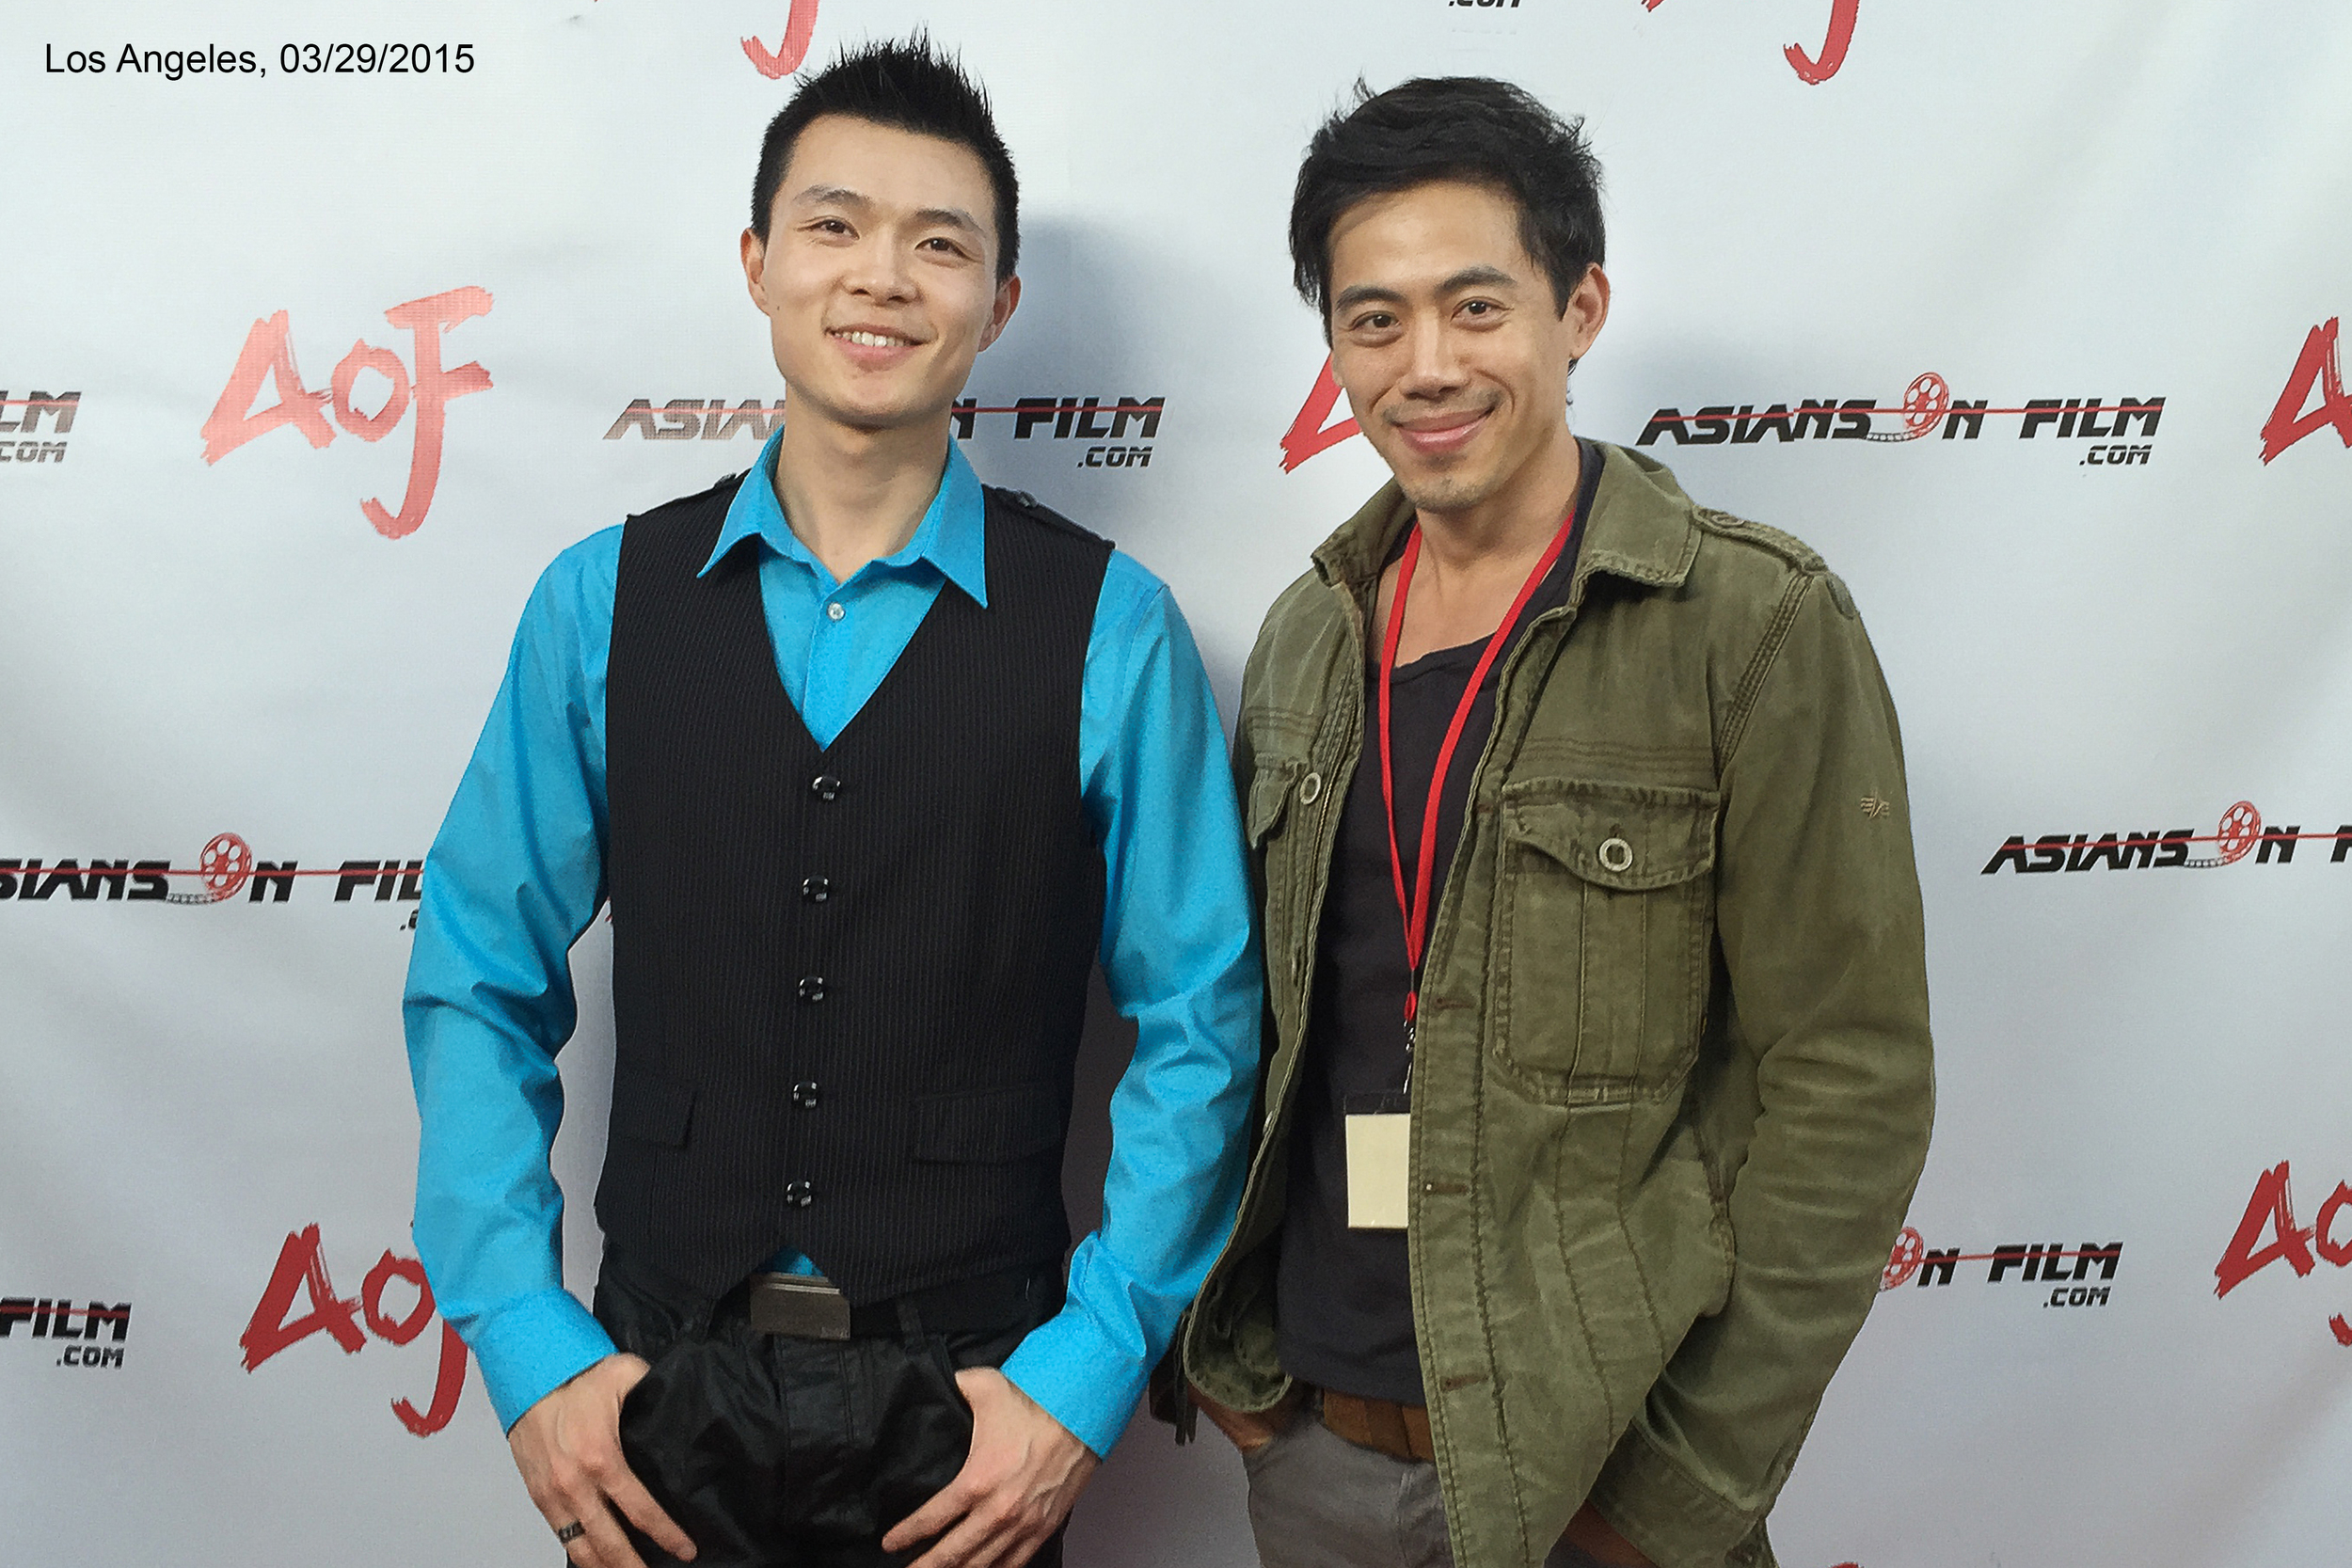 Actor Zilong Zee (nominated for Best Actor) and director Leon Le at the Asians on Film Festival 2015 in Los Angeles.